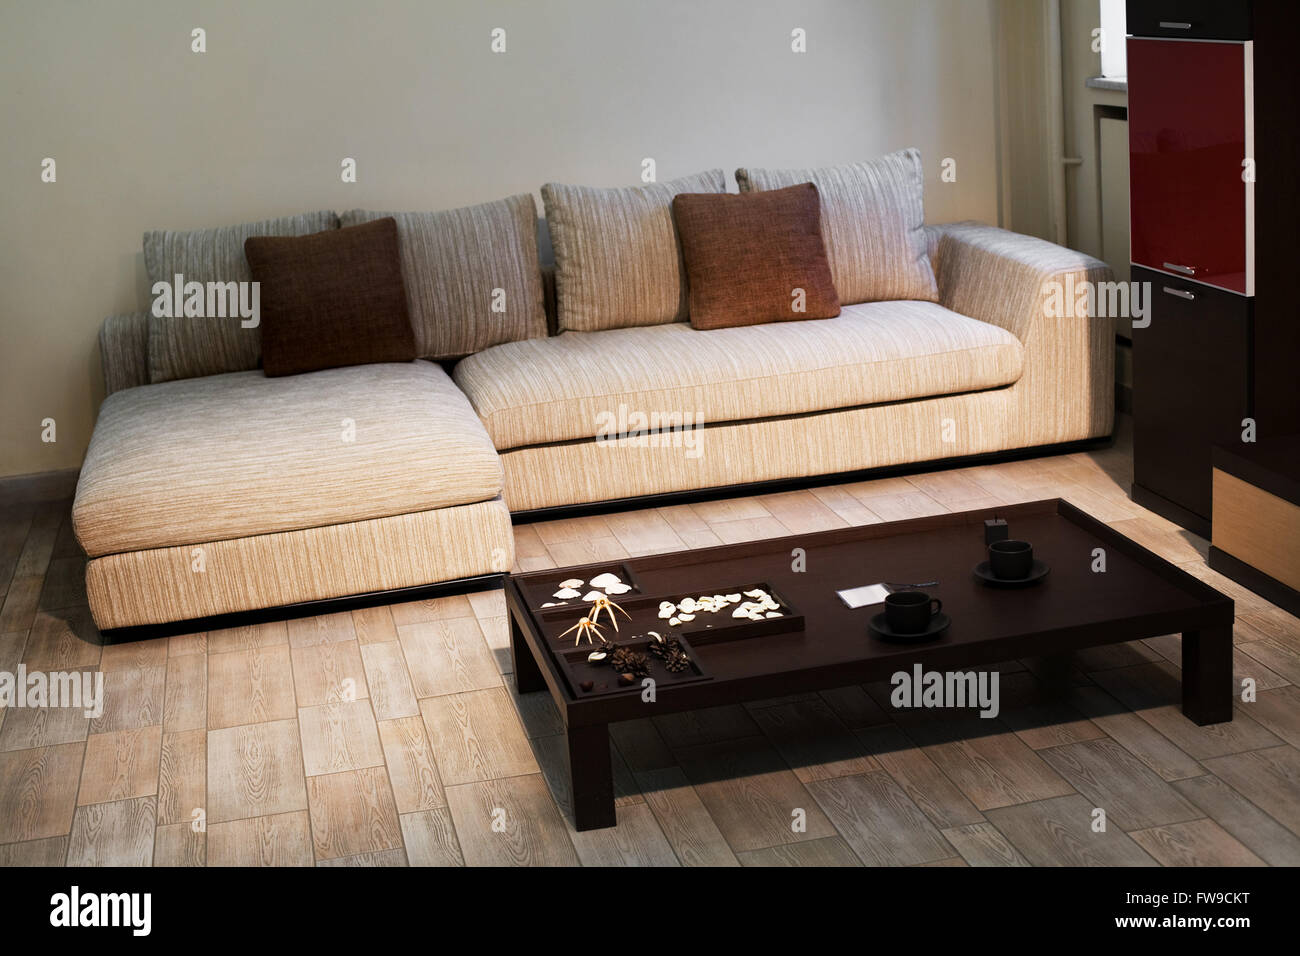 beautiful sofa with pillows and a table from a dark wooden stock photo royalty free image. Black Bedroom Furniture Sets. Home Design Ideas